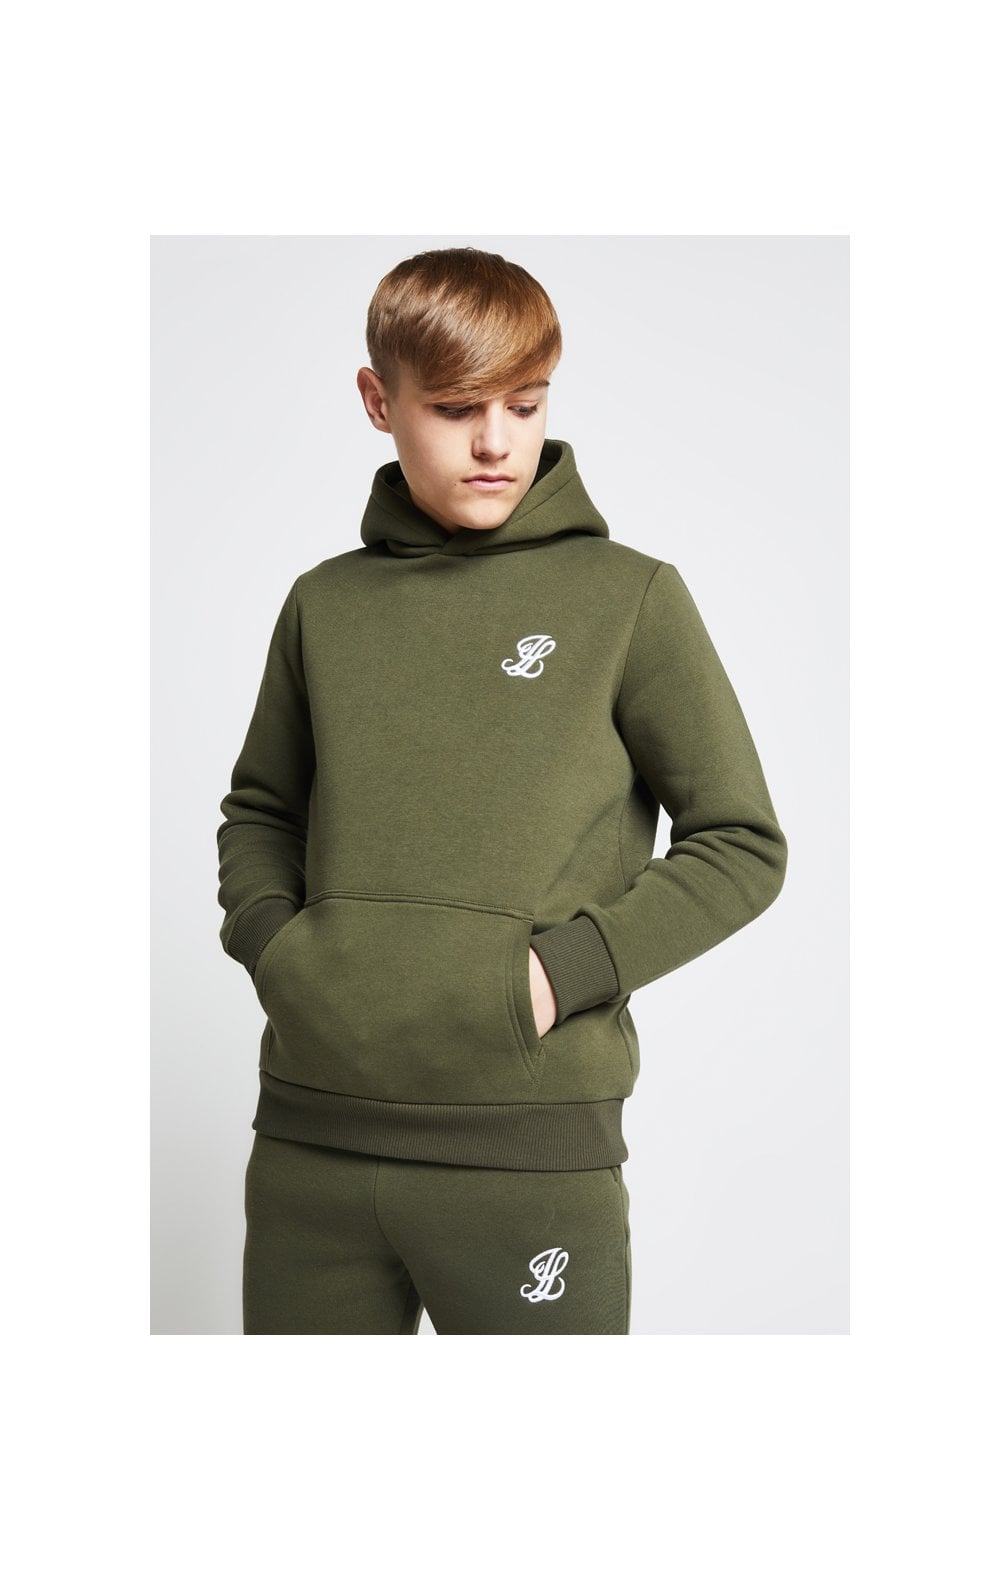 Load image into Gallery viewer, Illusive London Overhead Hoodie - Khaki (1)